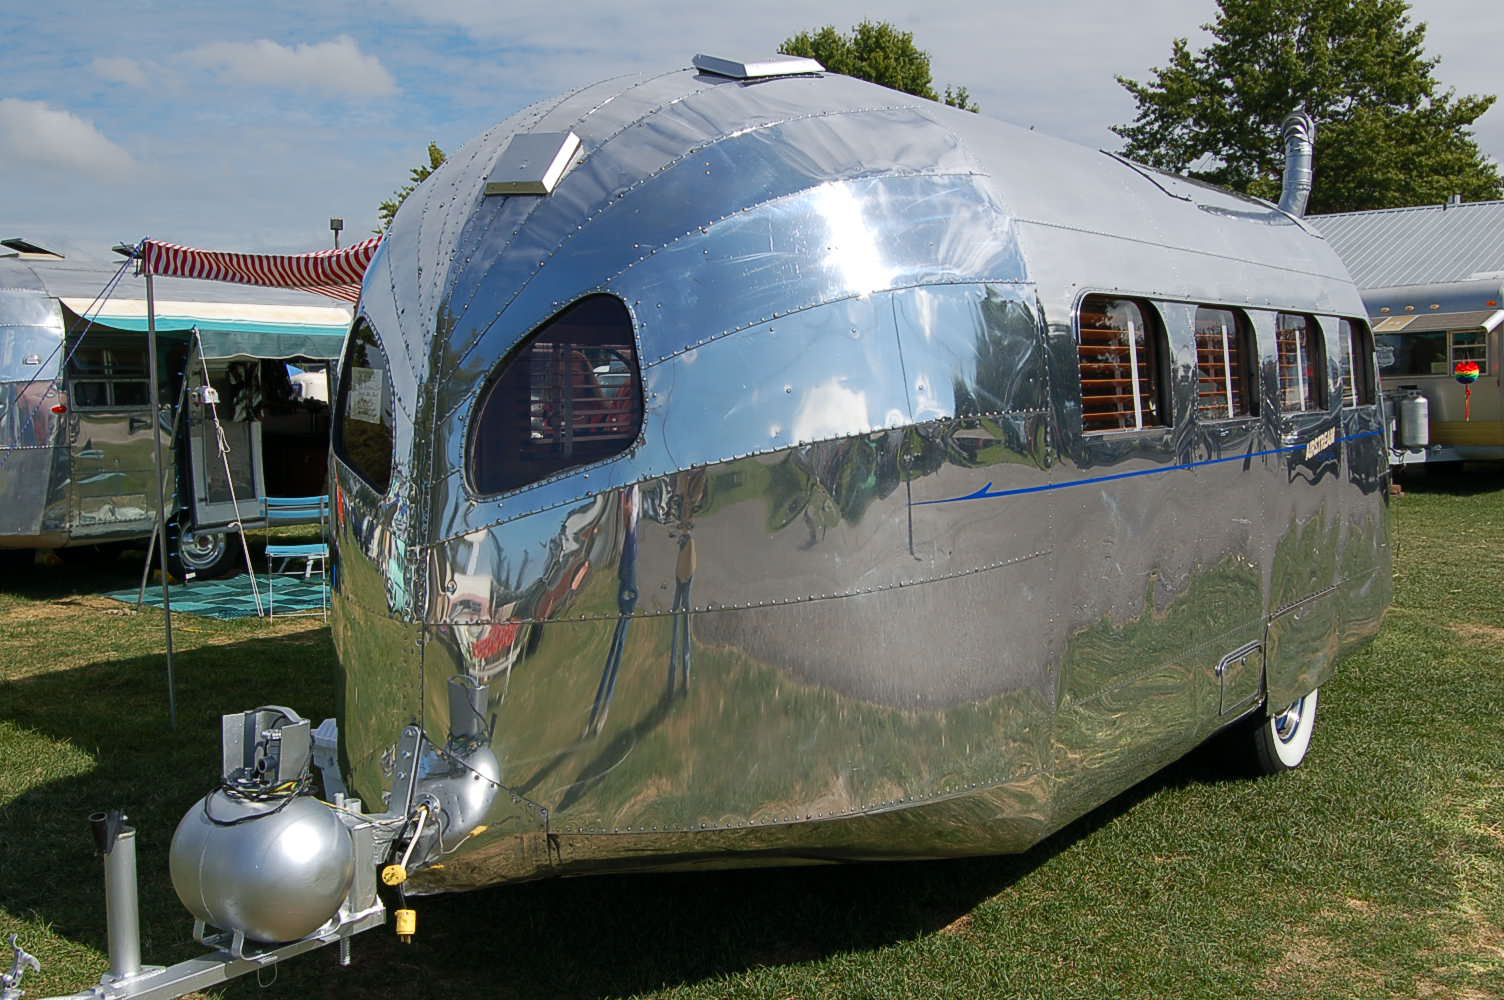 Used Airstream Travel Trailers For Sale In Texas